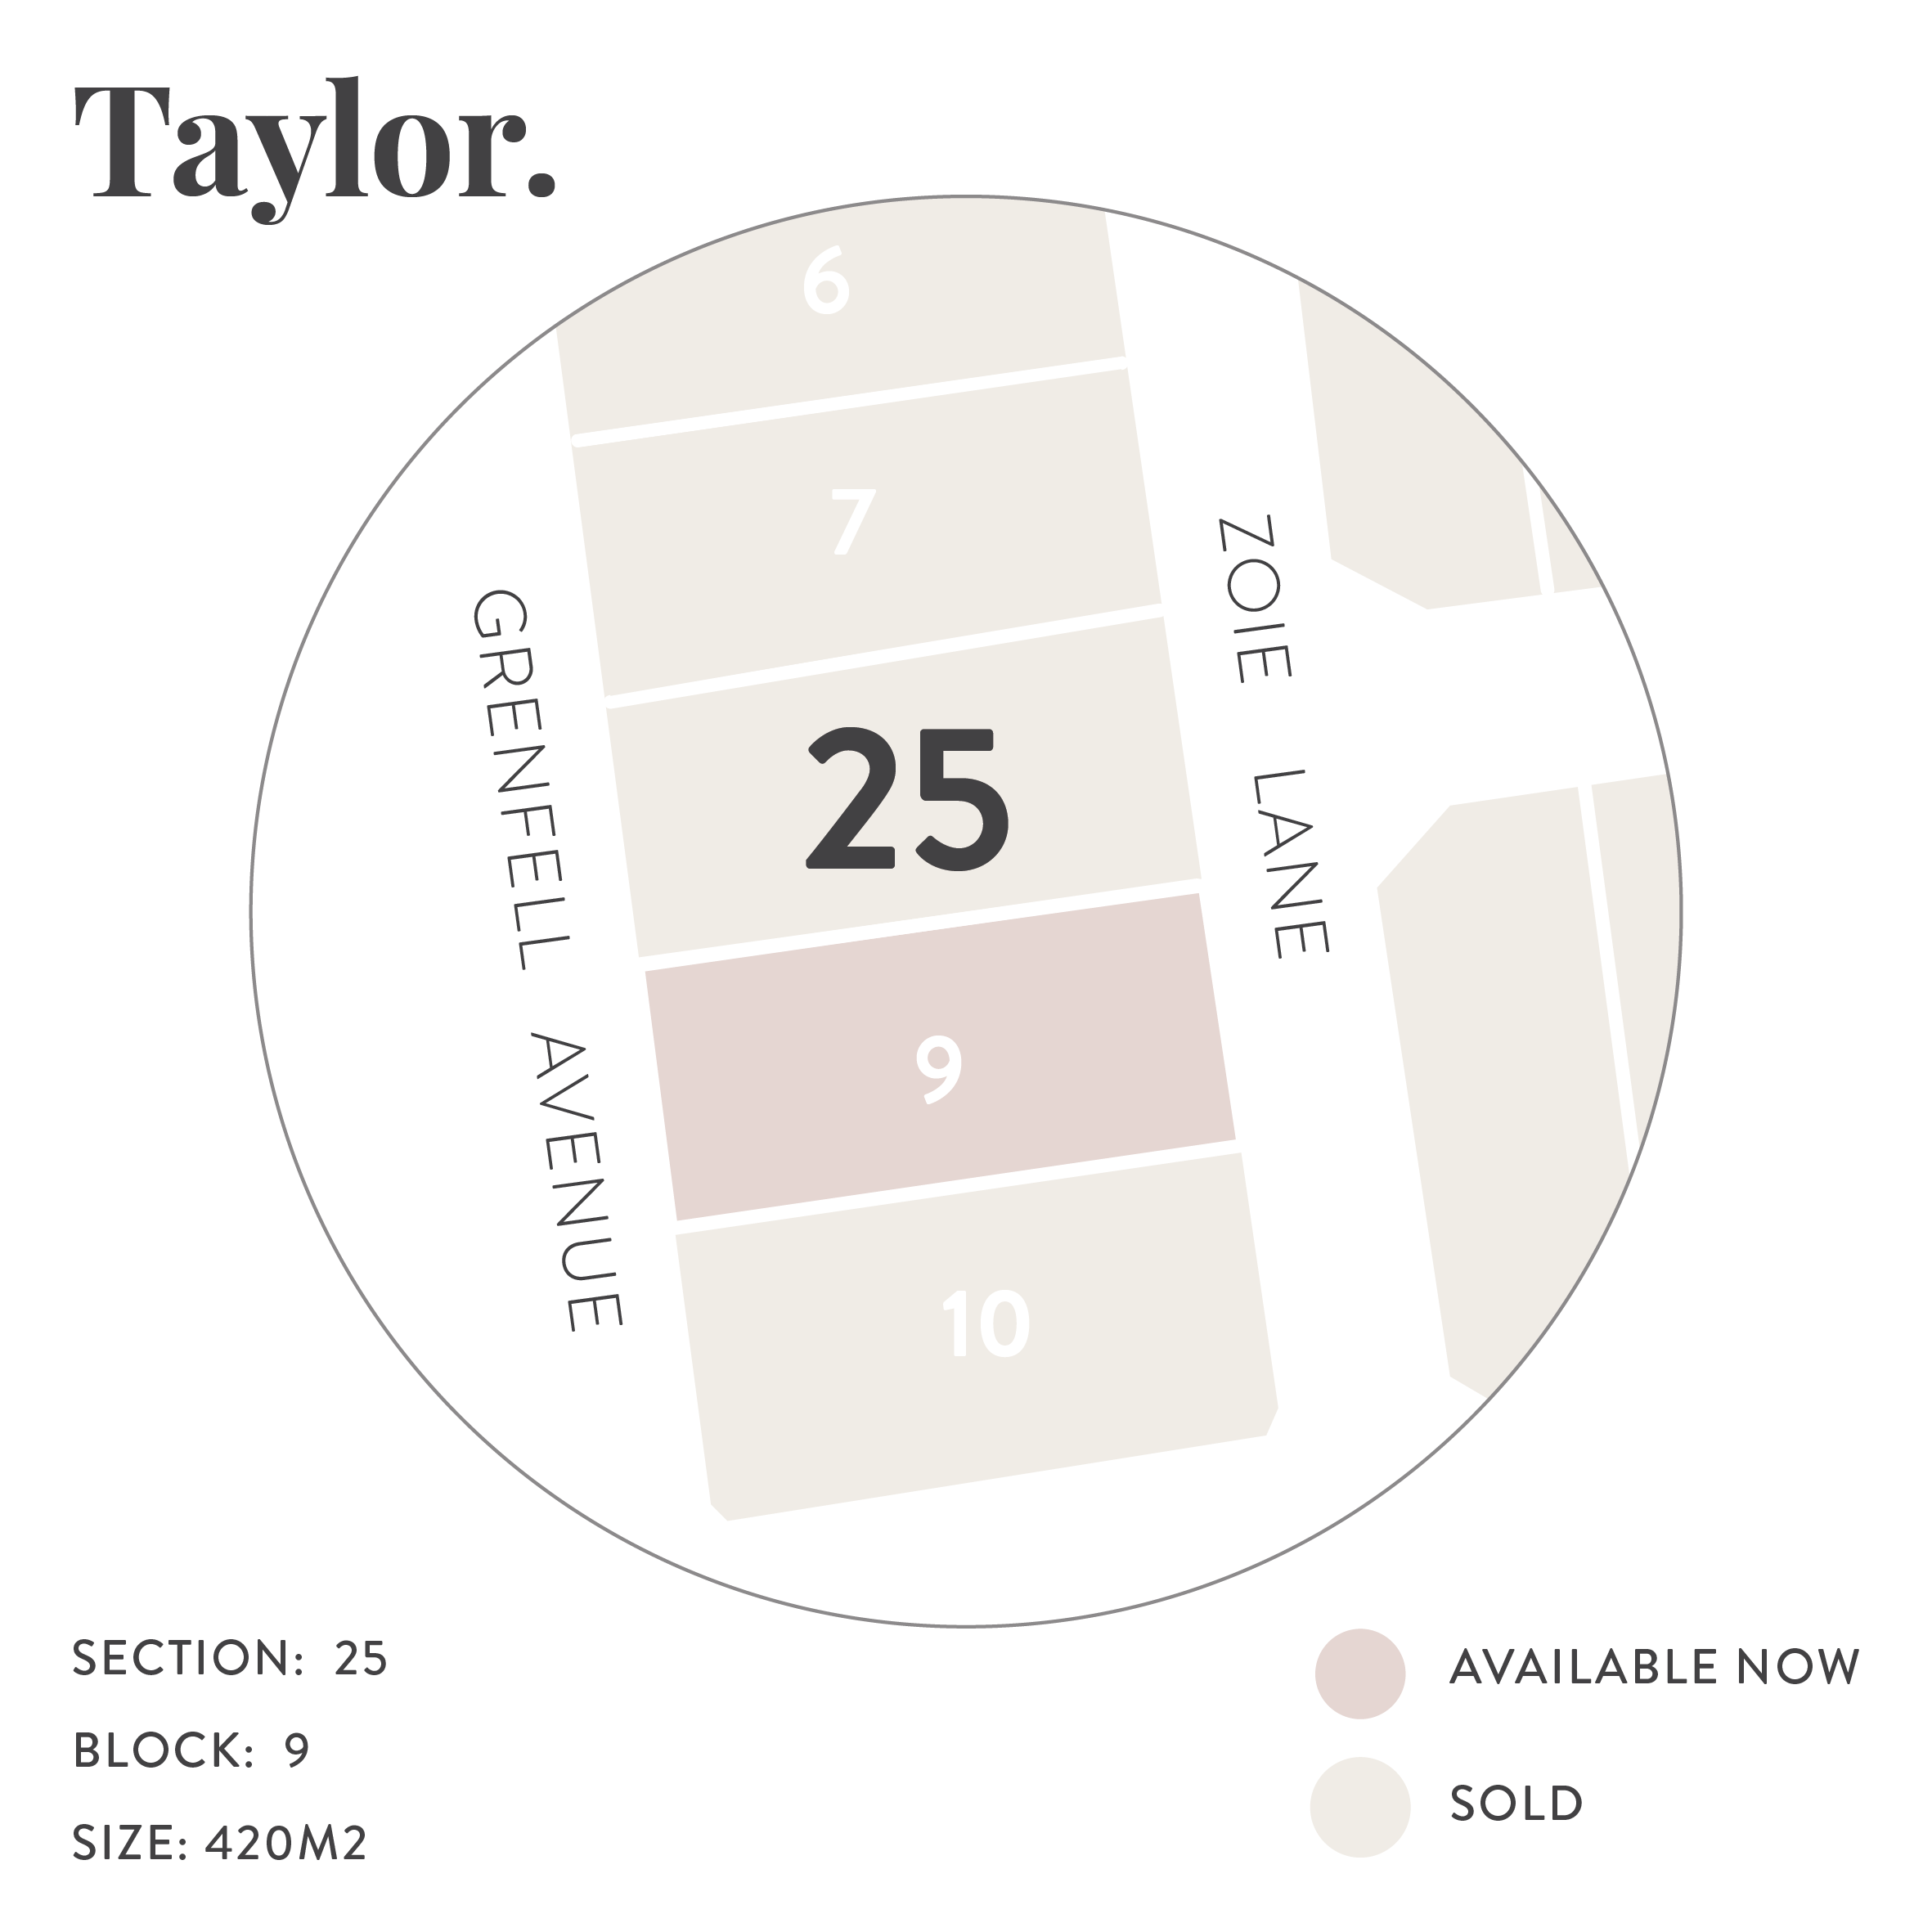 Taylor Land Images-01.png